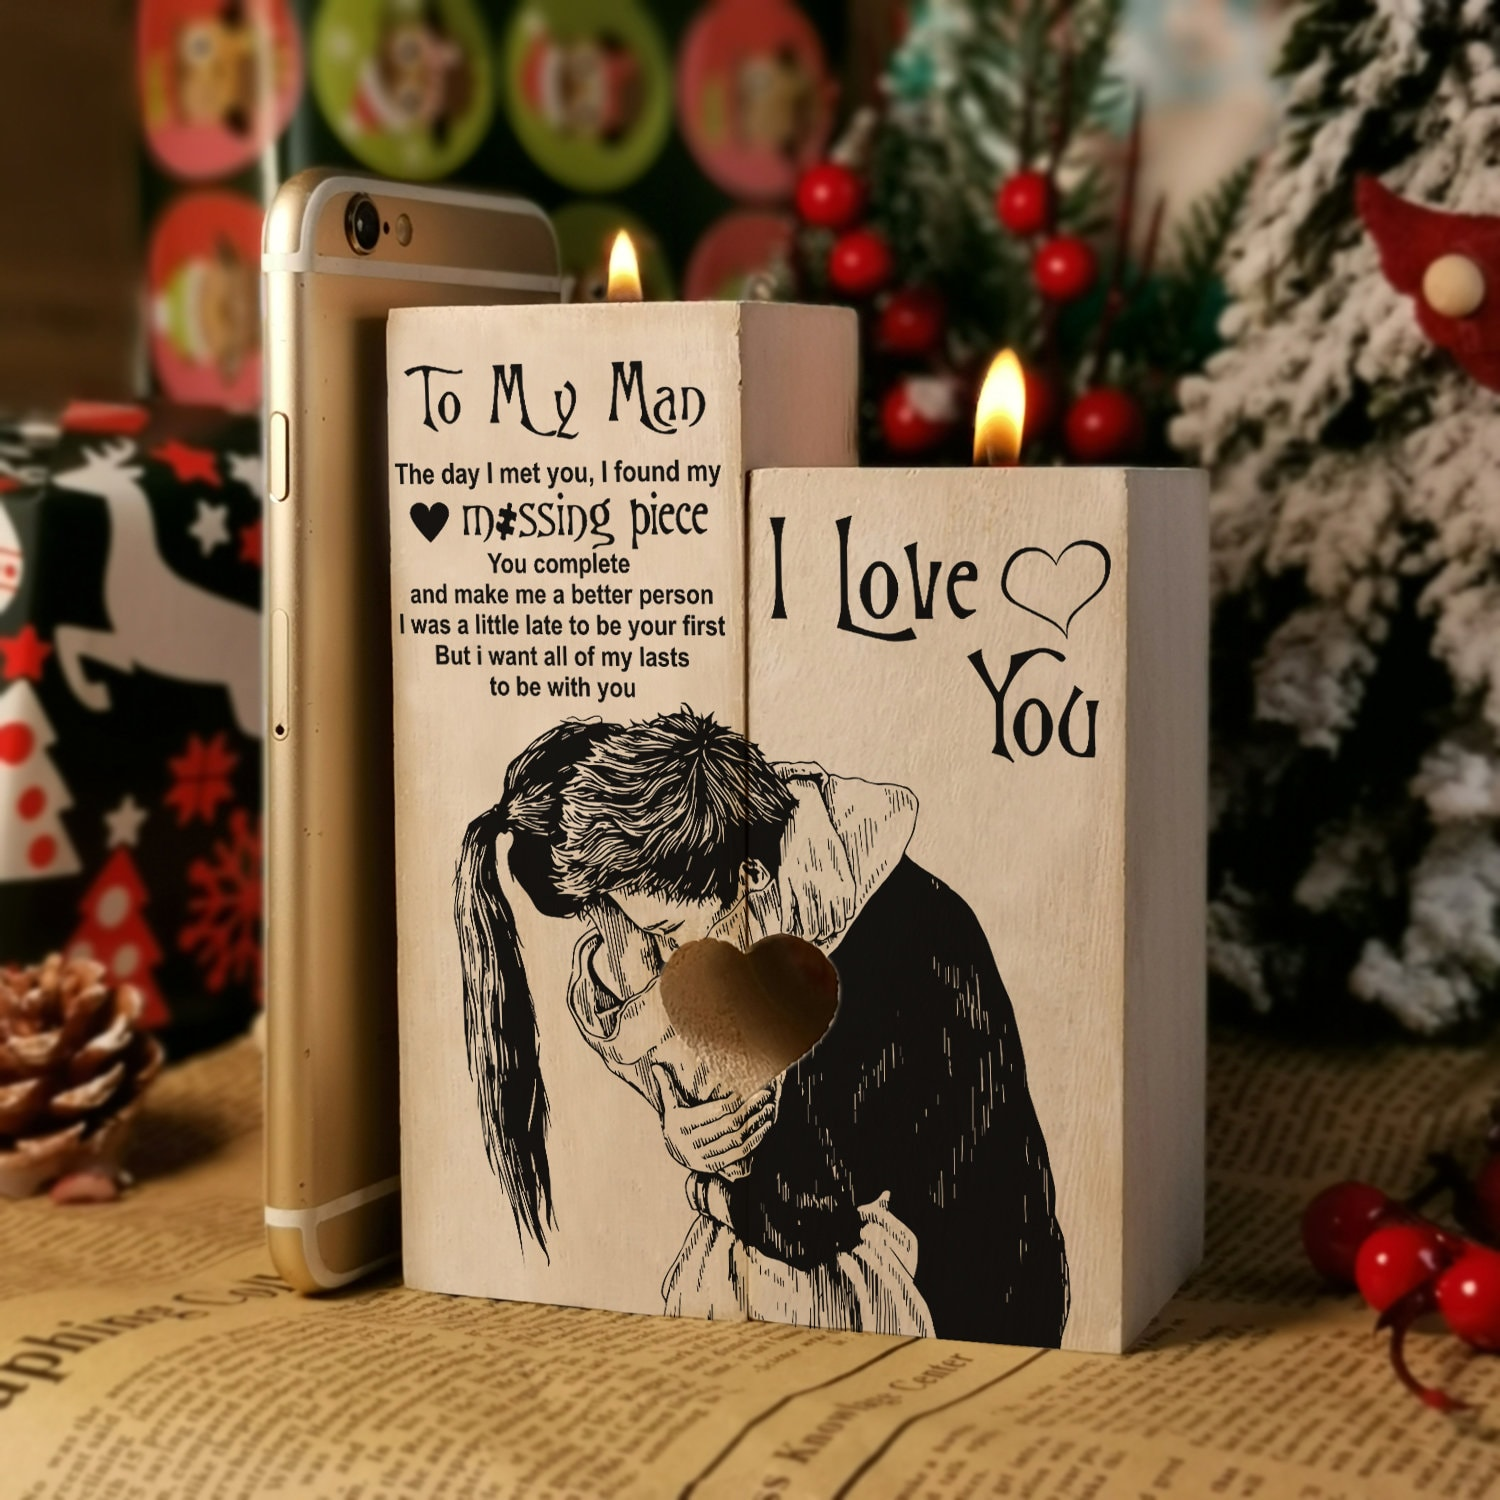 To My Man For Husband Pair Candle Holder Wife Gift 2021 Birthday Christmas Uni Graduation Valentine Wedding Anniversary Gifts